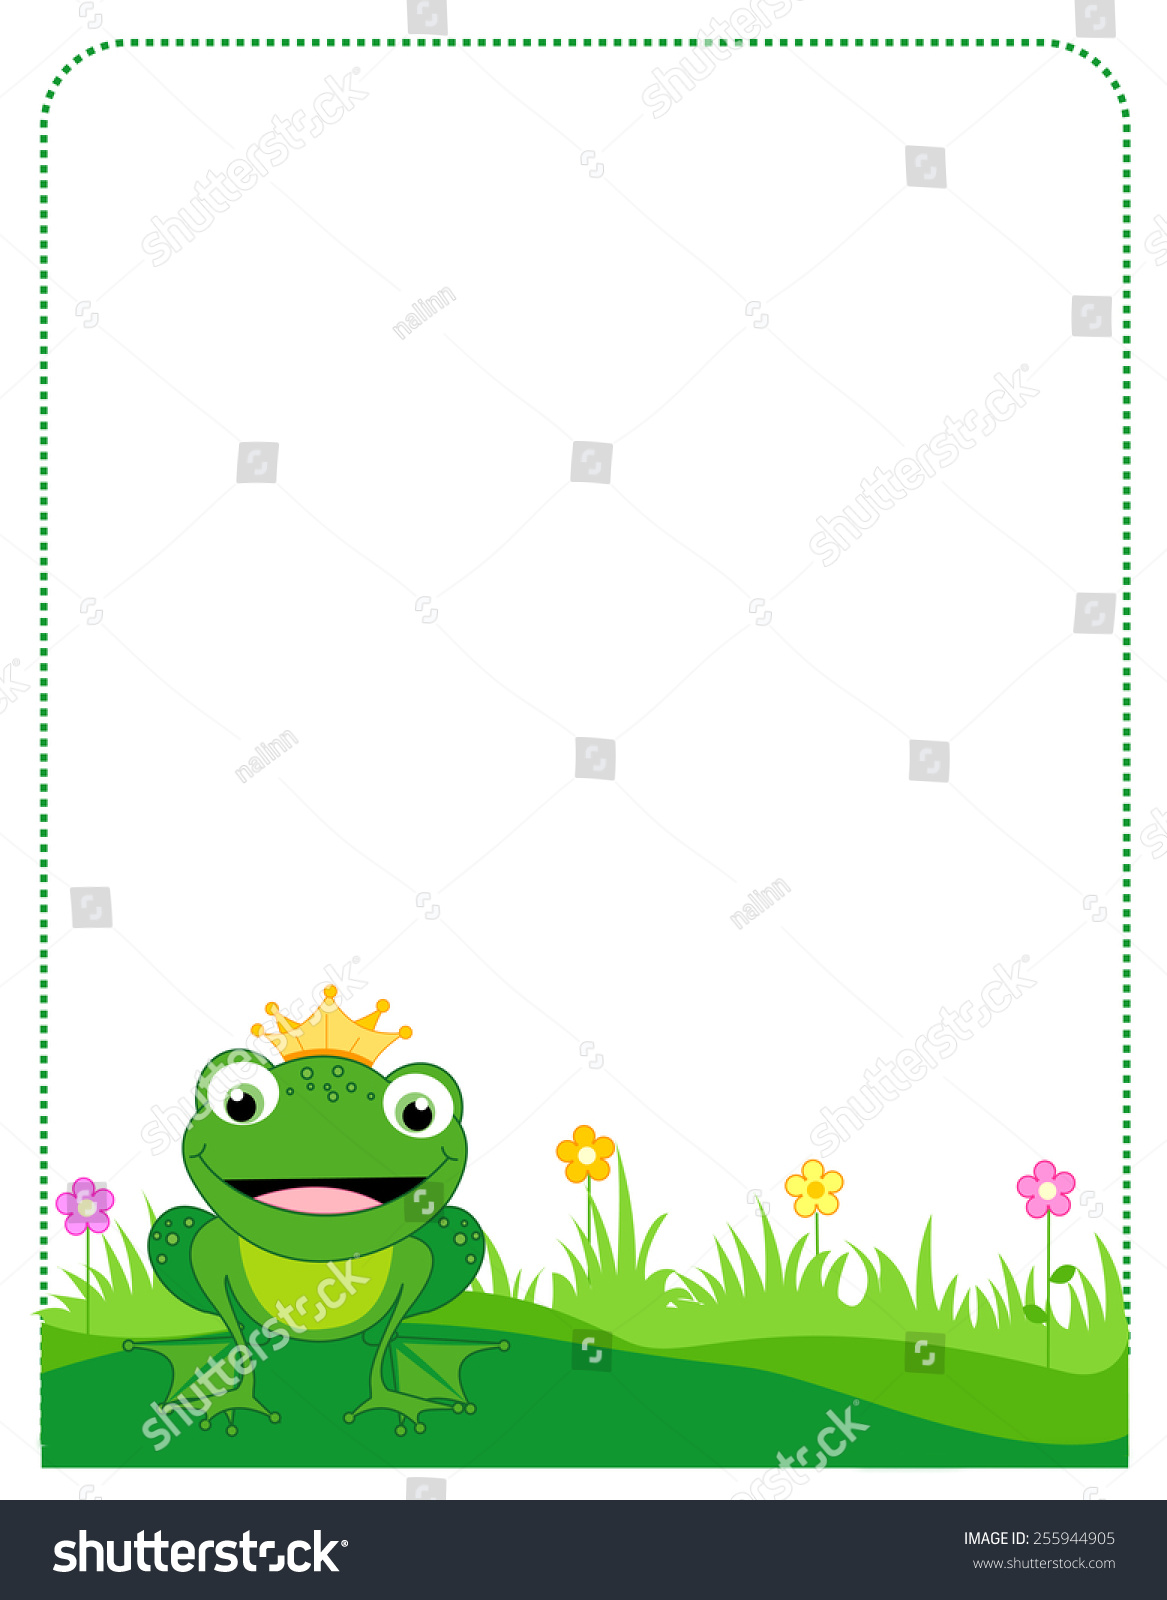 Cute Frog Golden Crown Border Frame Stock Vector HD (Royalty Free ...